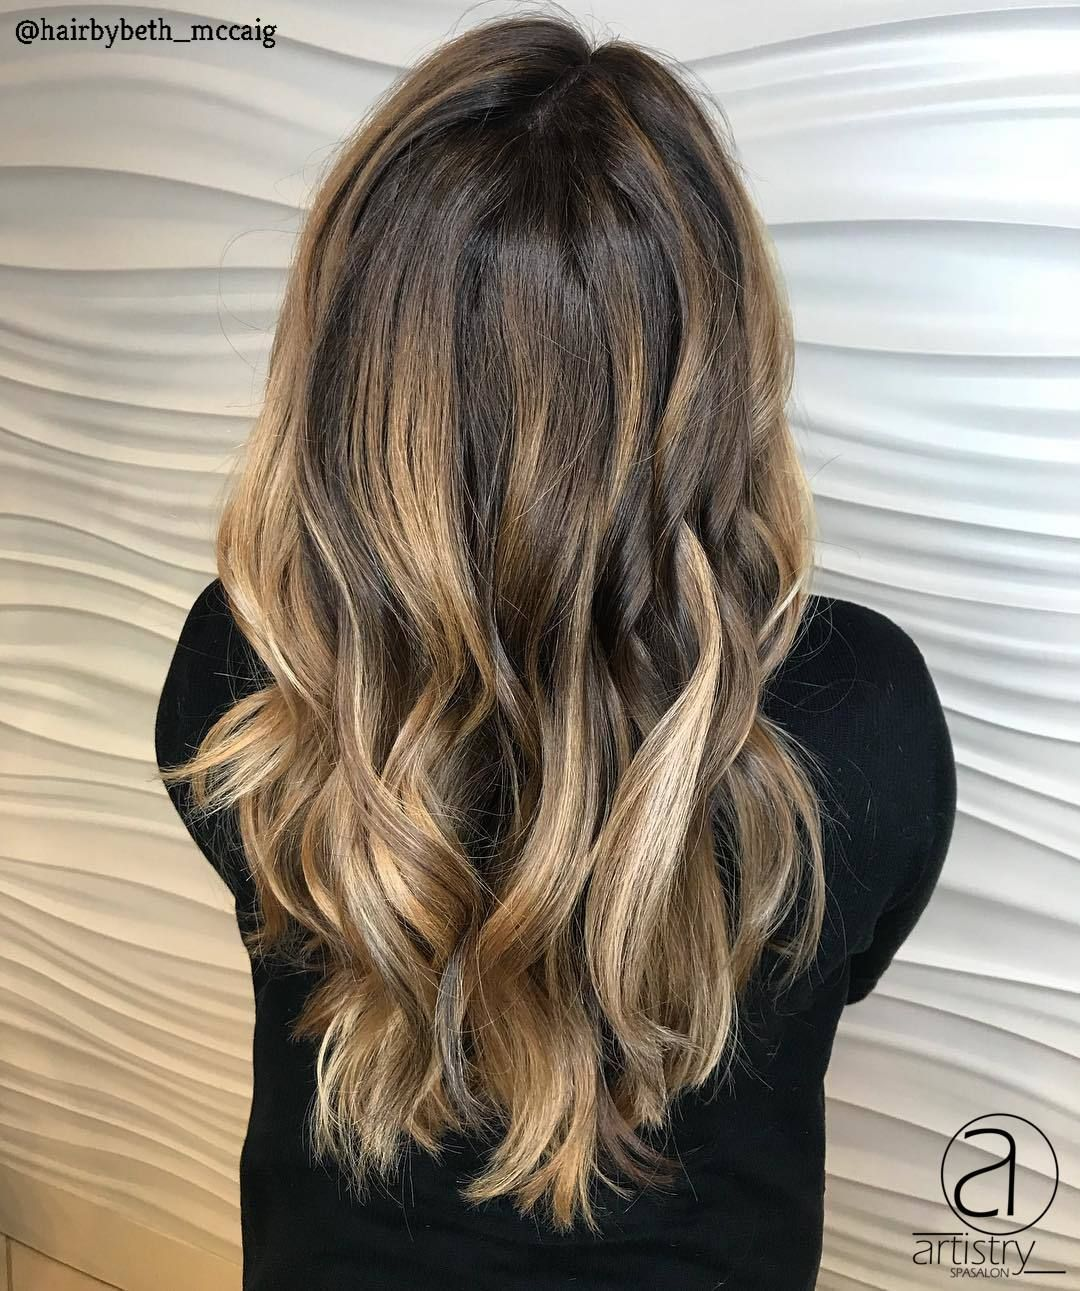 Dimensional brunette with blonde ends by beth mccaig beth mccaig